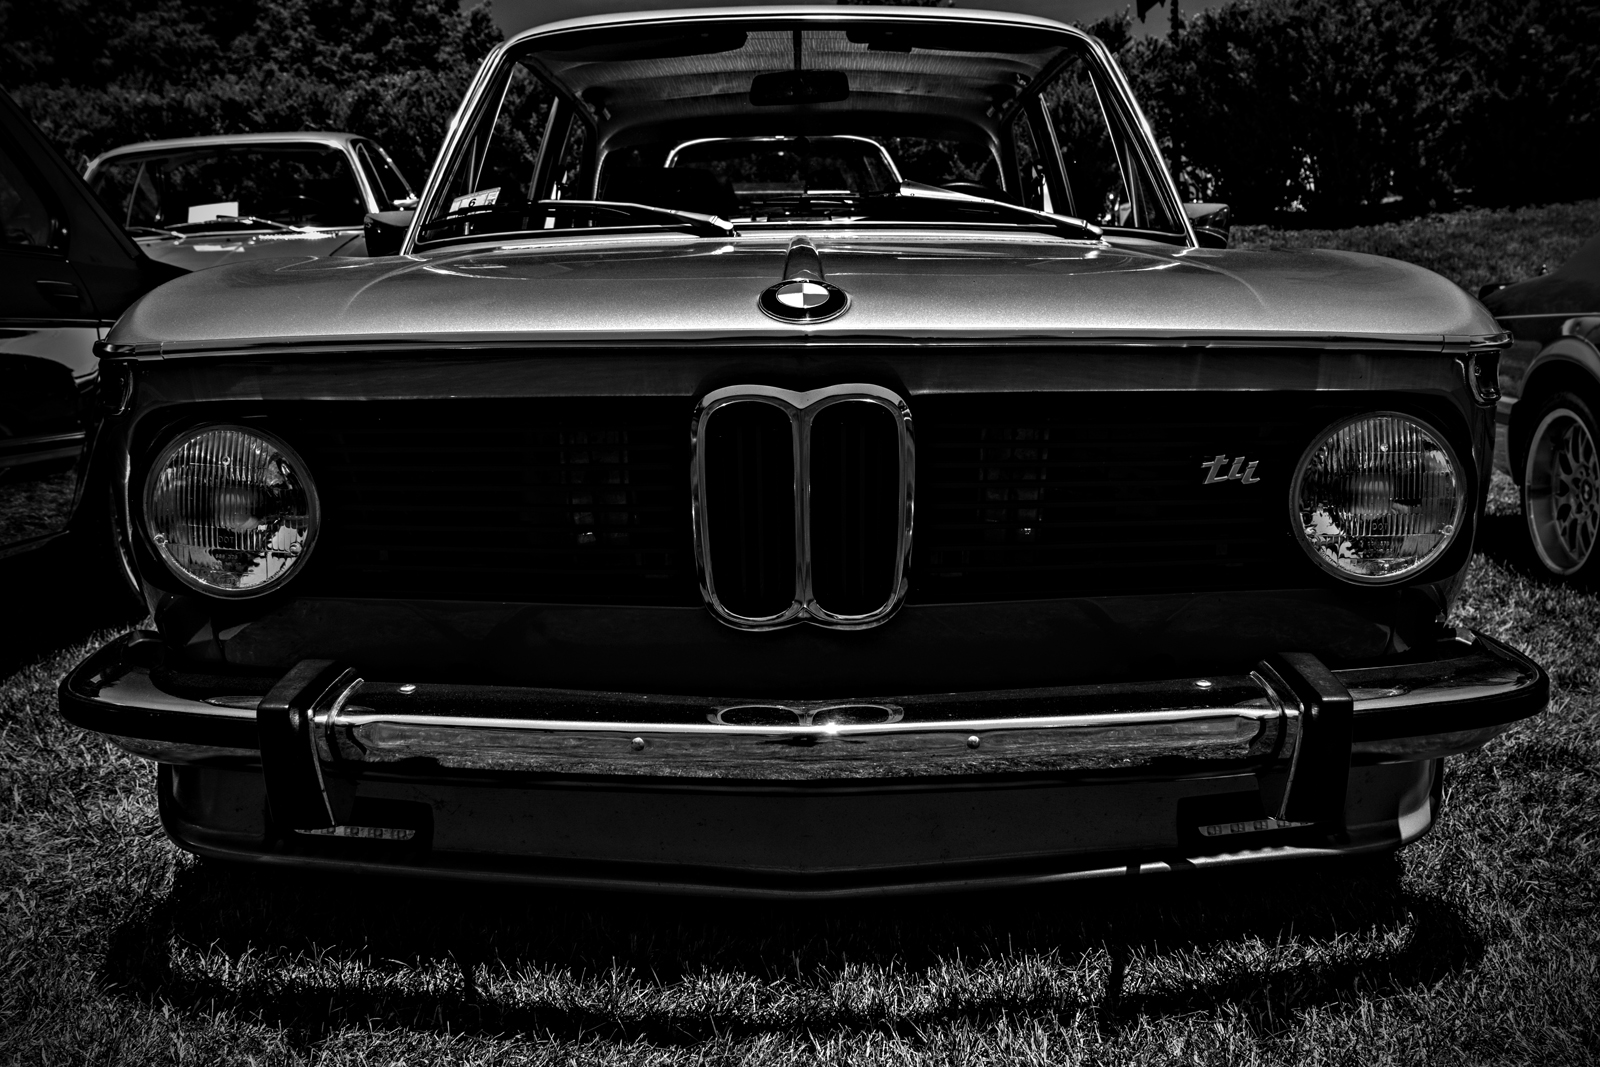 1972 BMW 2002 tii at Larz Anderson Auto Museum. Brookline, MA